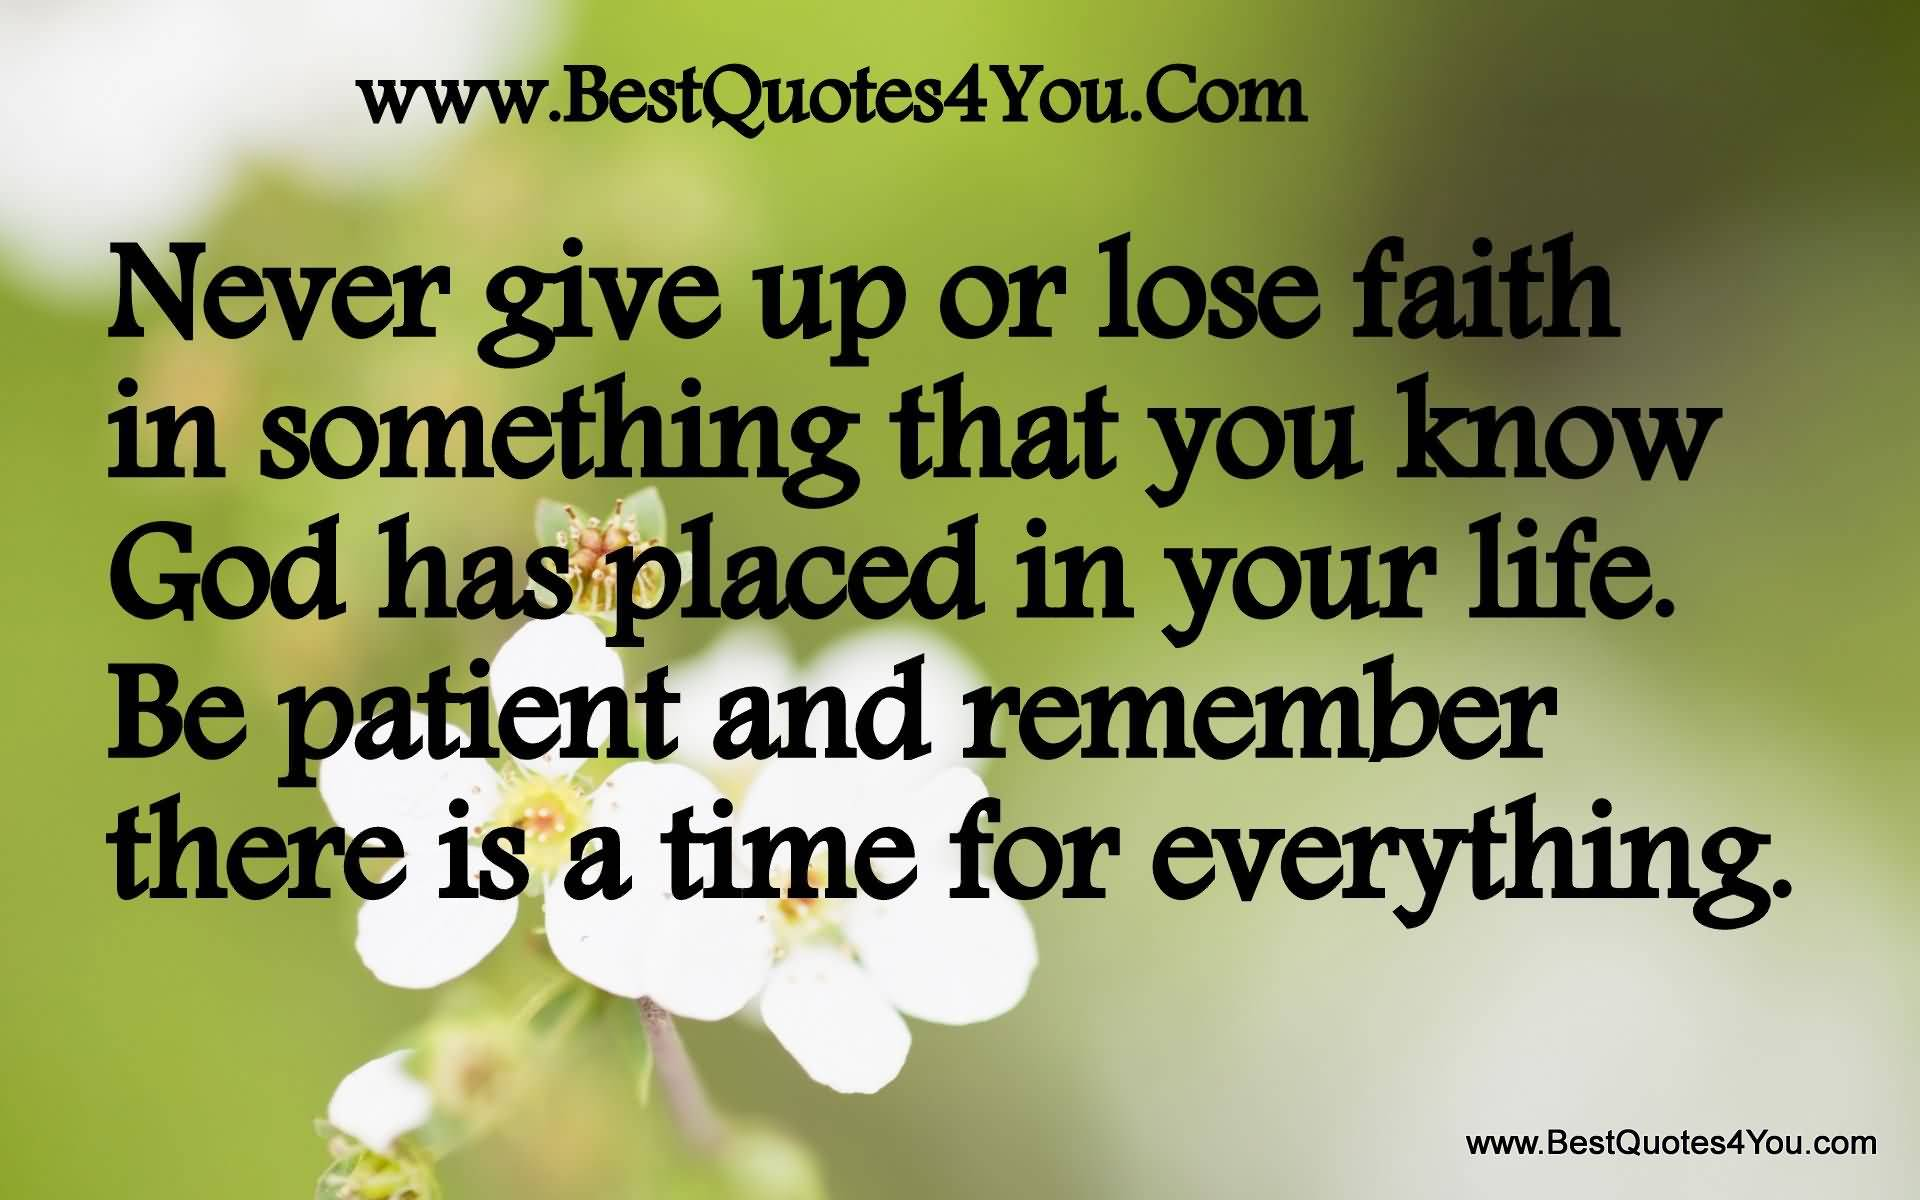 Never Give Up On Life Quotes Enchanting Never Give Up On Life Quotes 09  Quotesbae